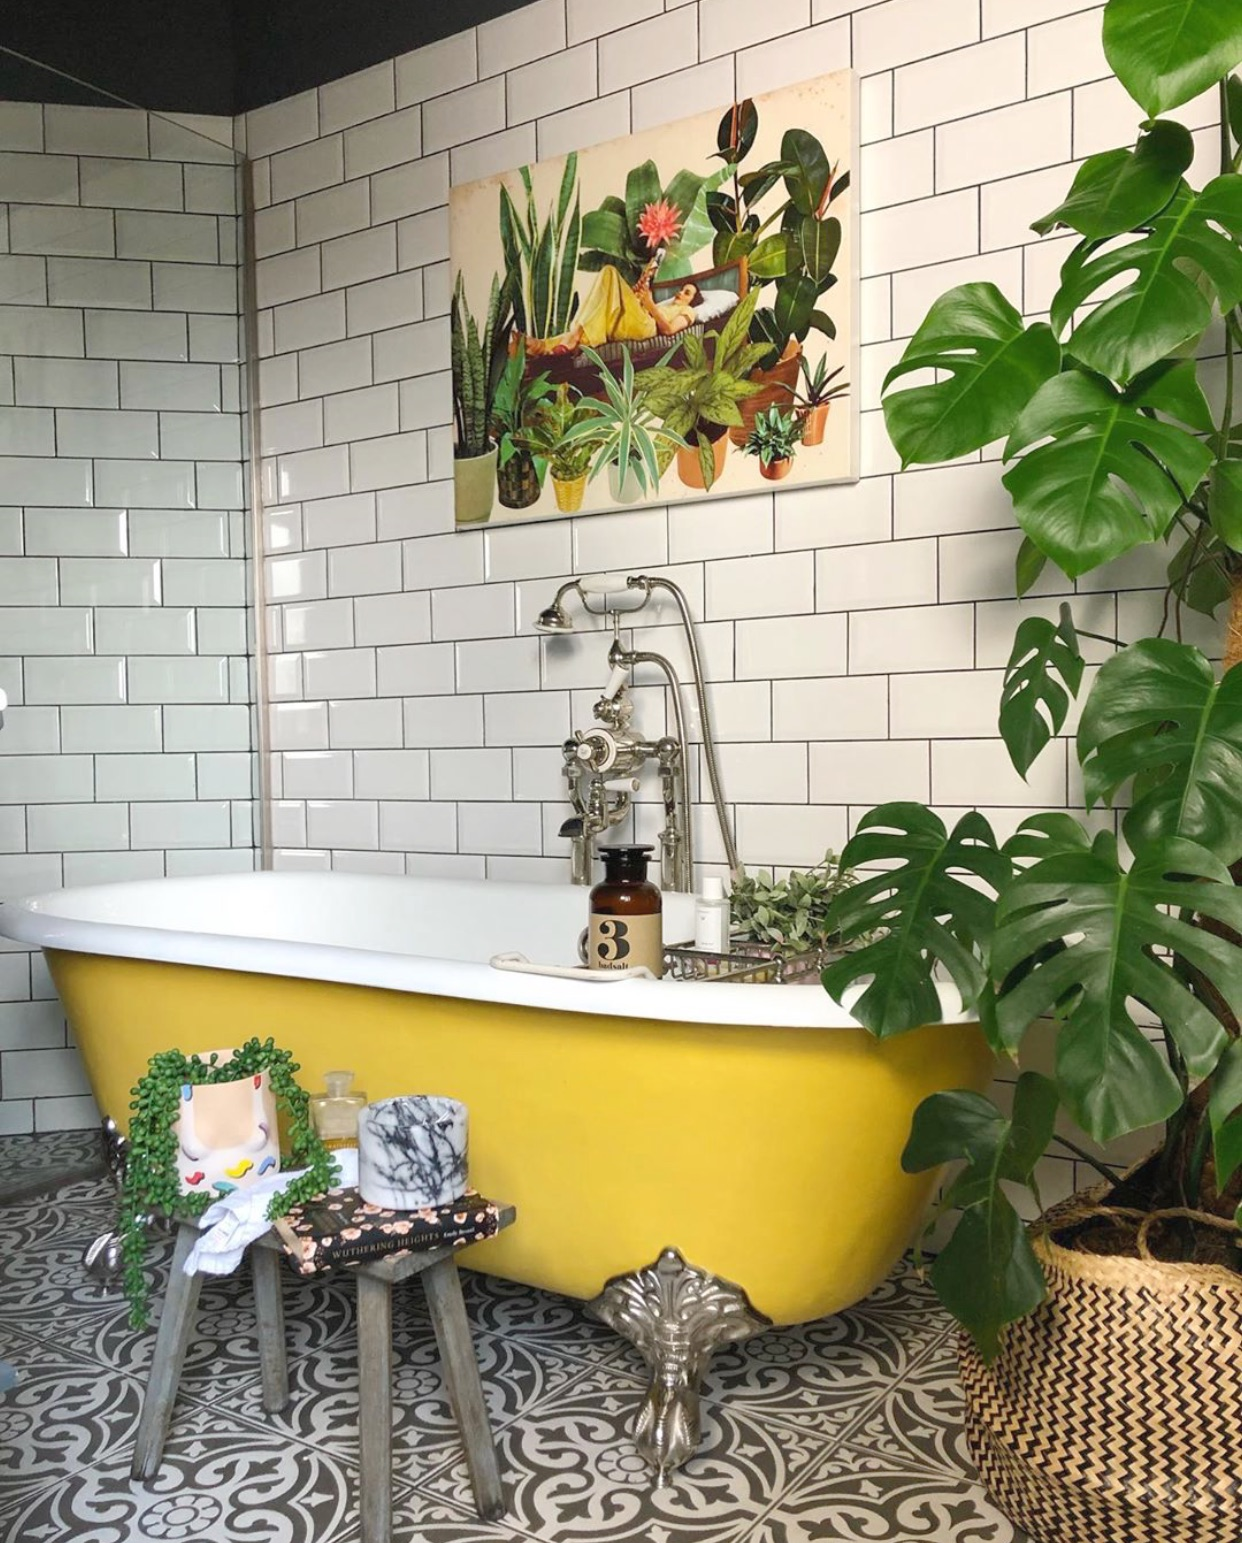 A fabulously bright yellow bath - Instagram -  @the_idle_hands